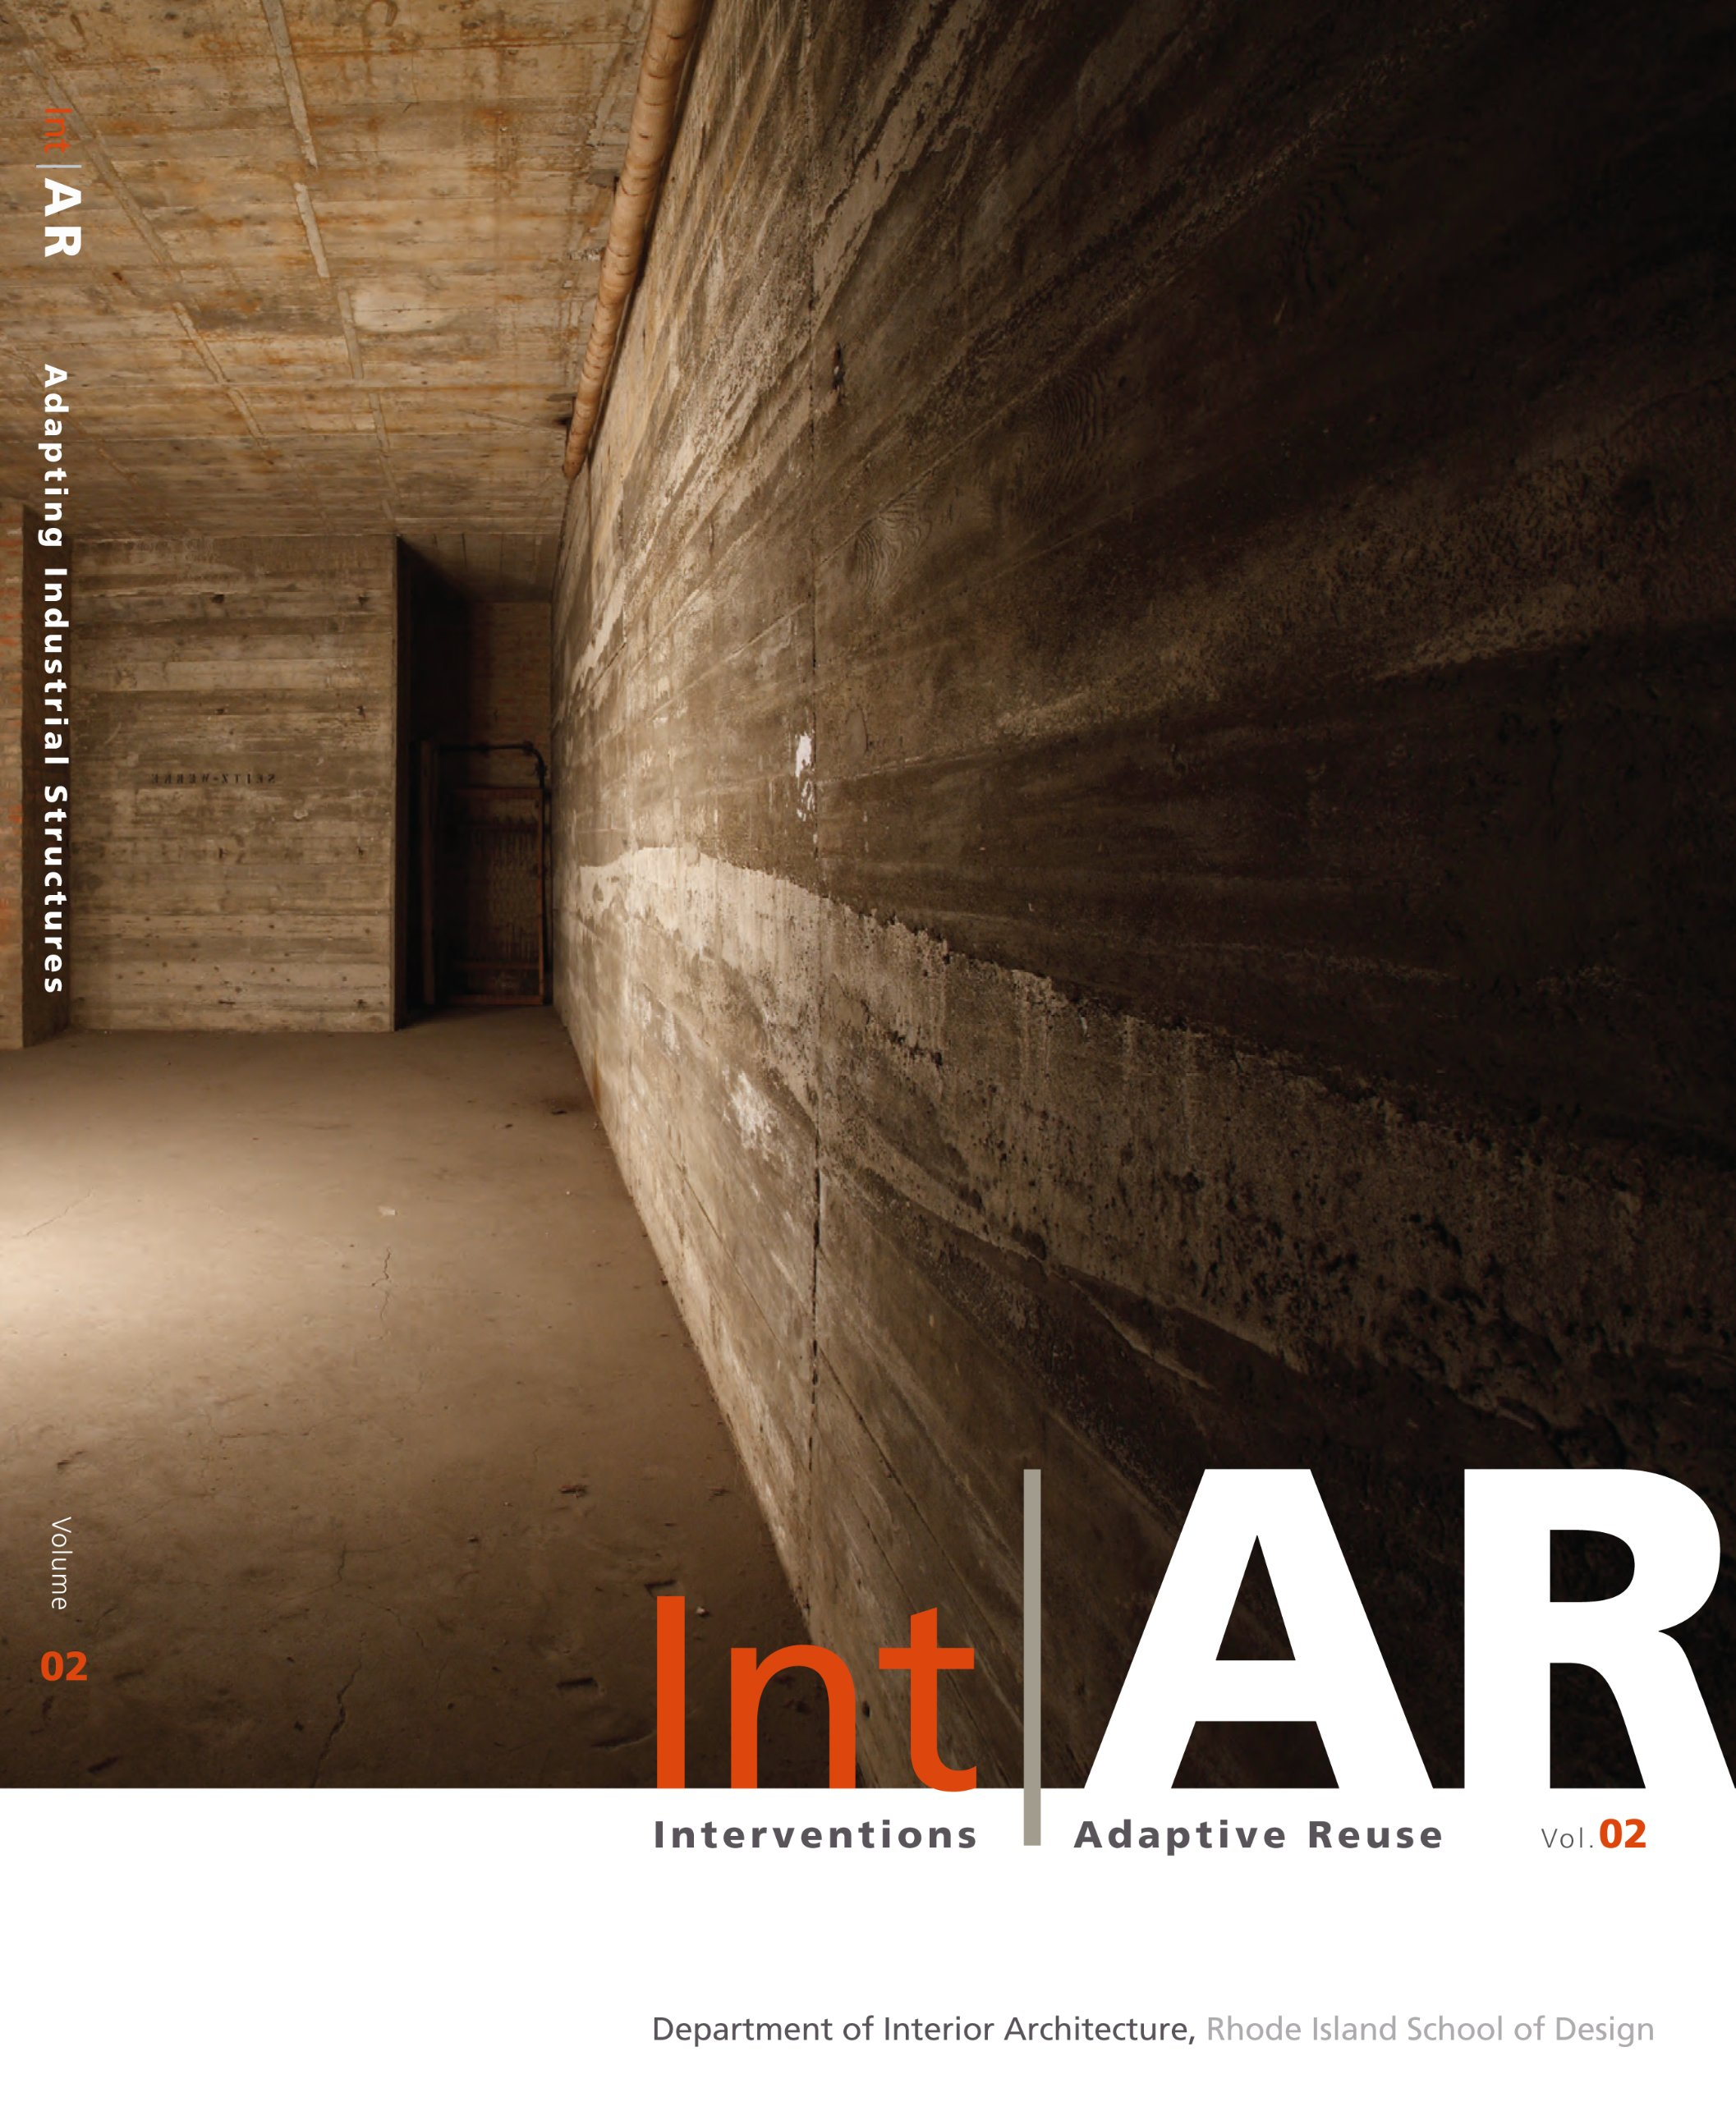 IntAR, Interventions Adaptive Reuse, Volume